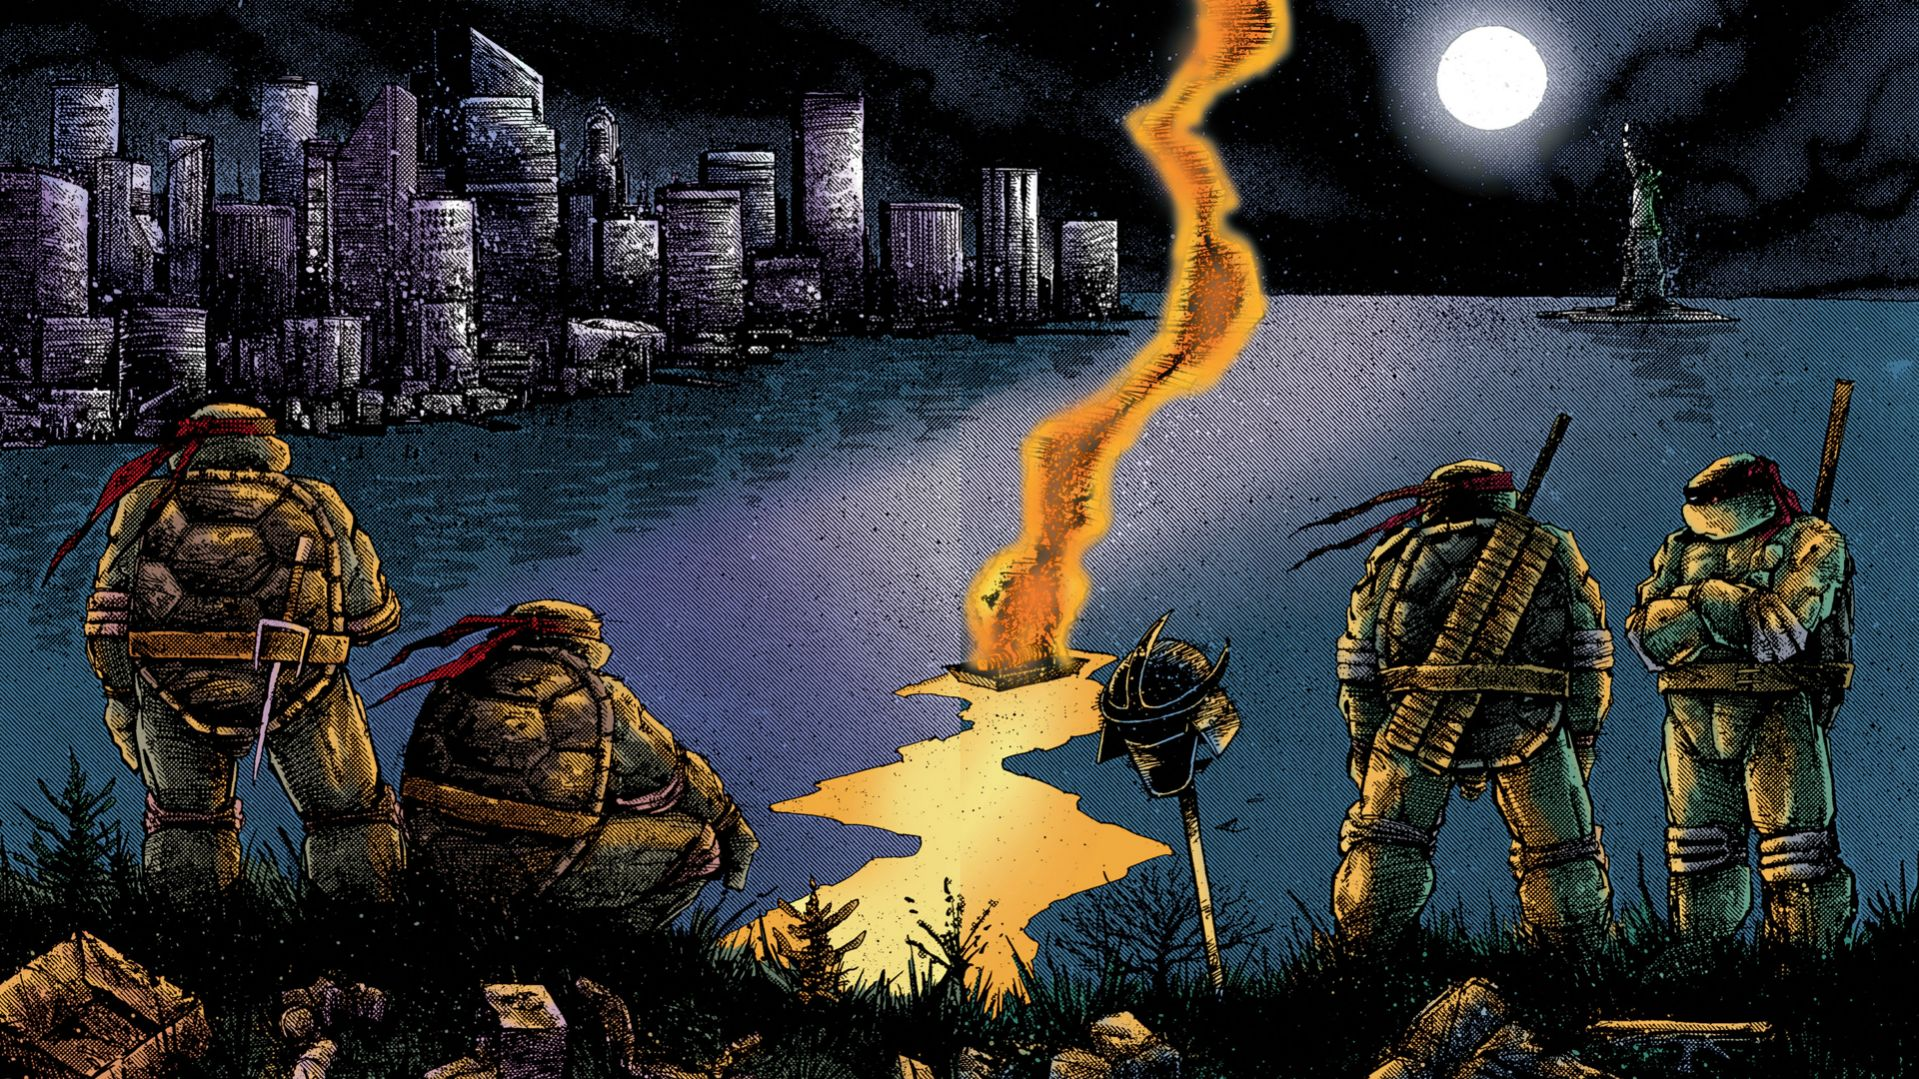 General 1919x1079 Teenage Mutant Ninja Turtles comic art New York City Kevin Eastman Peter Laird